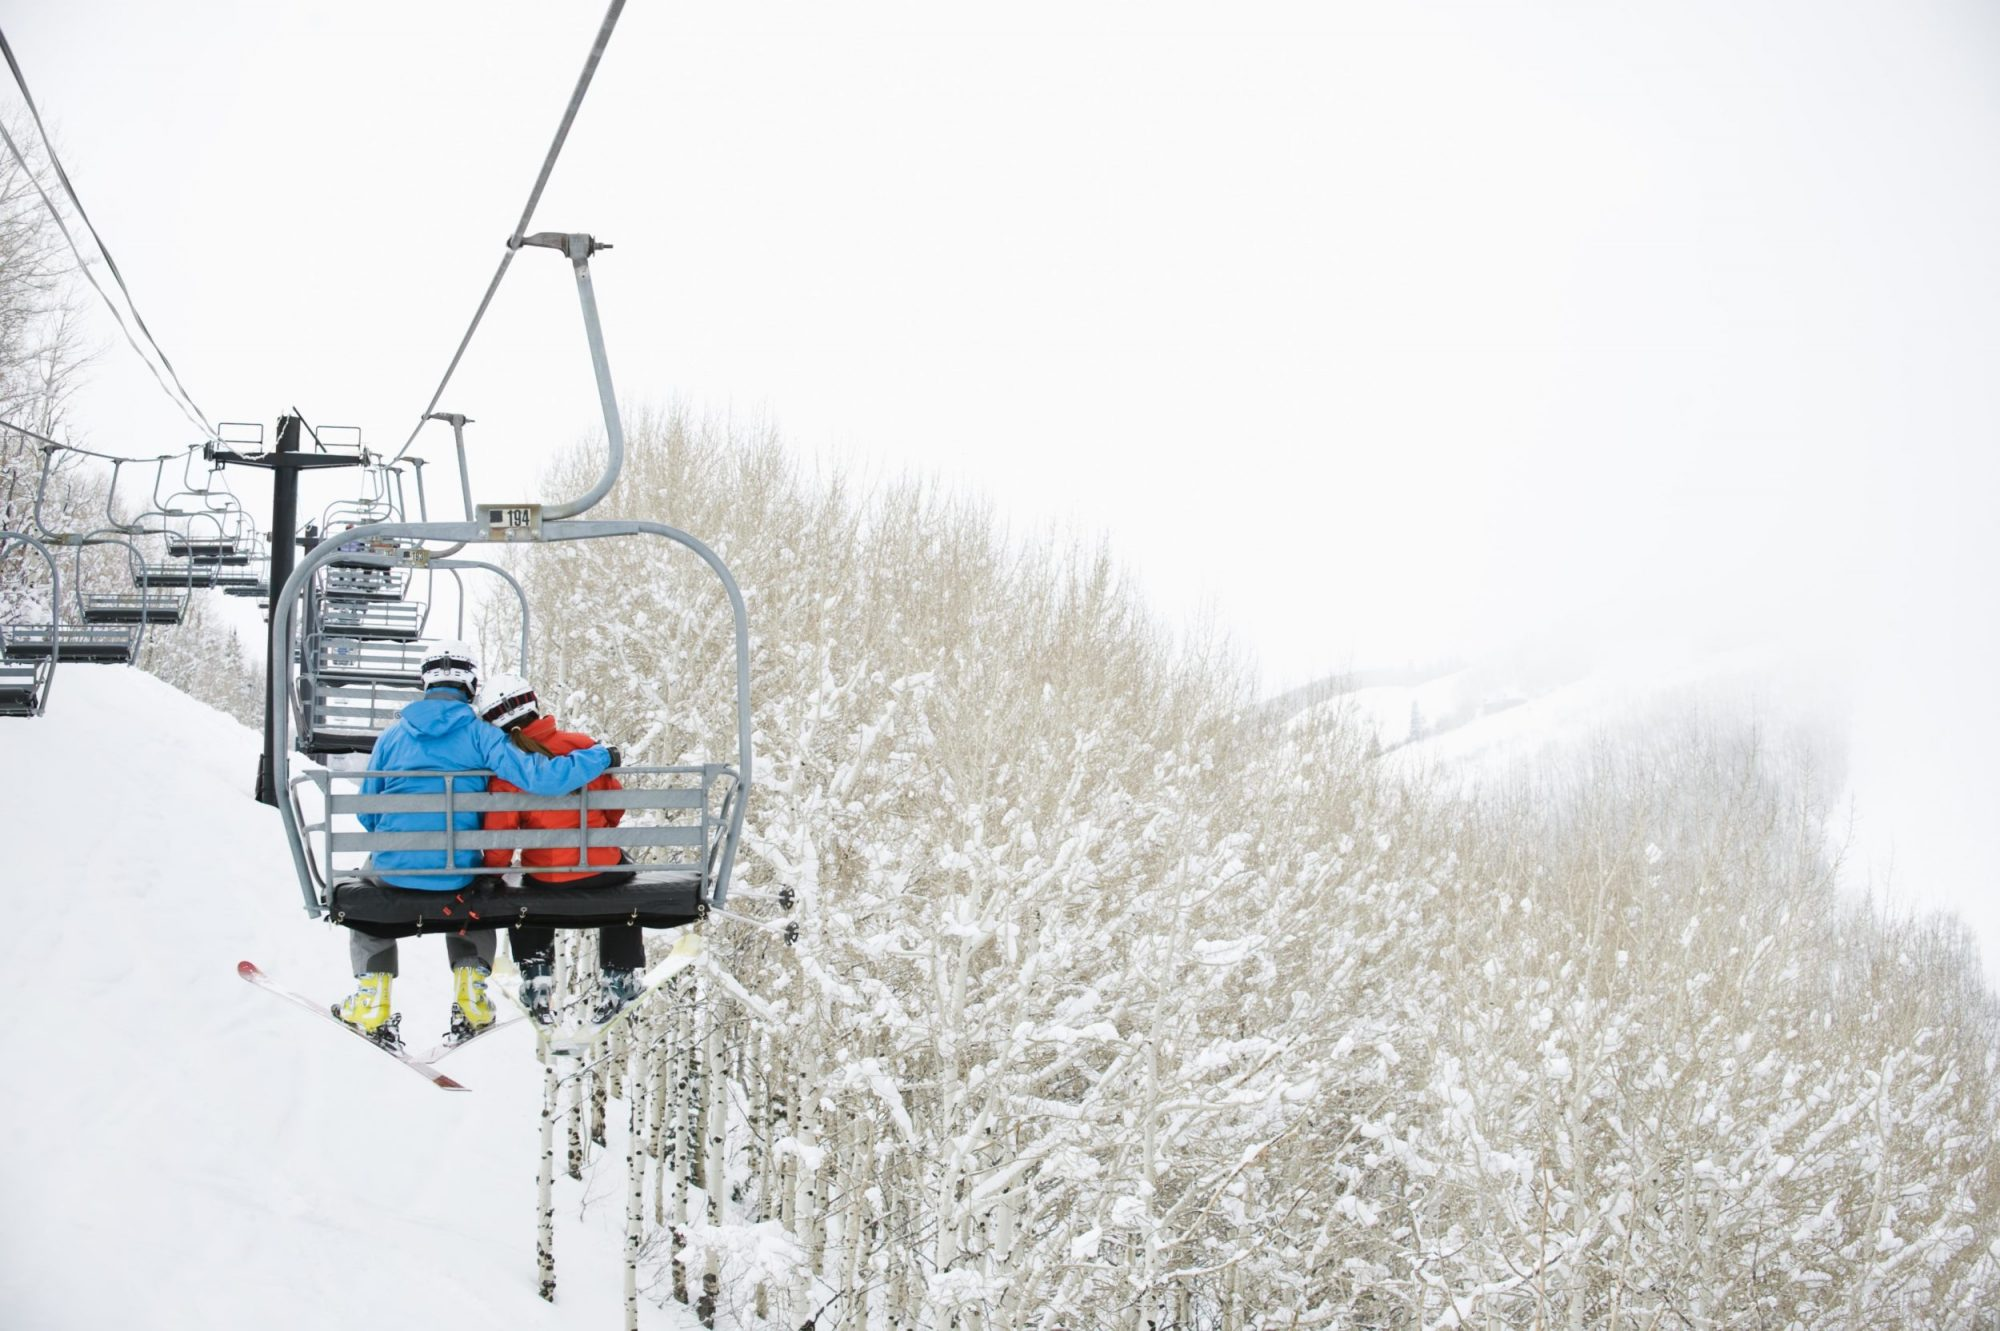 Photo of Ski Lift Malfunction Video